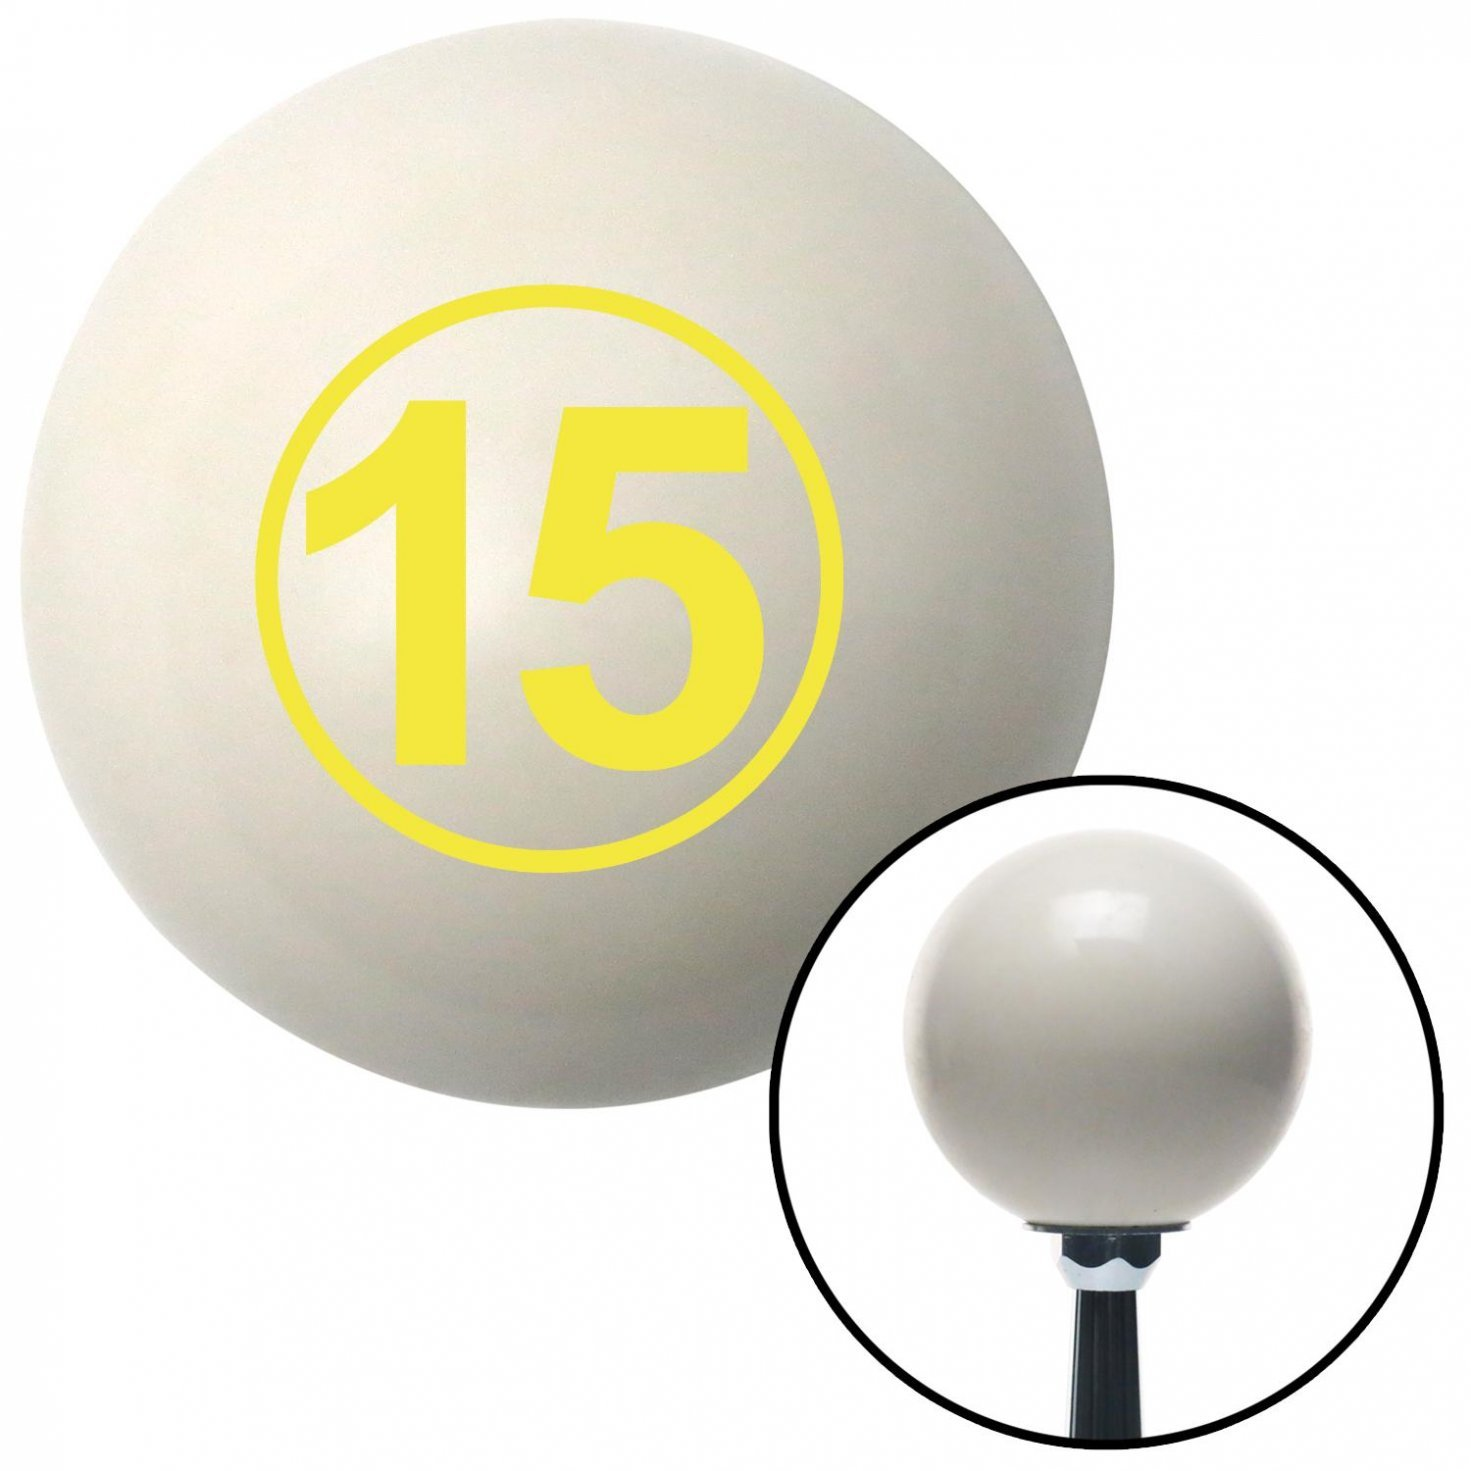 Yellow Ball 15 American Shifter 30389 Ivory Shift Knob with 16mm x 1.5 Insert